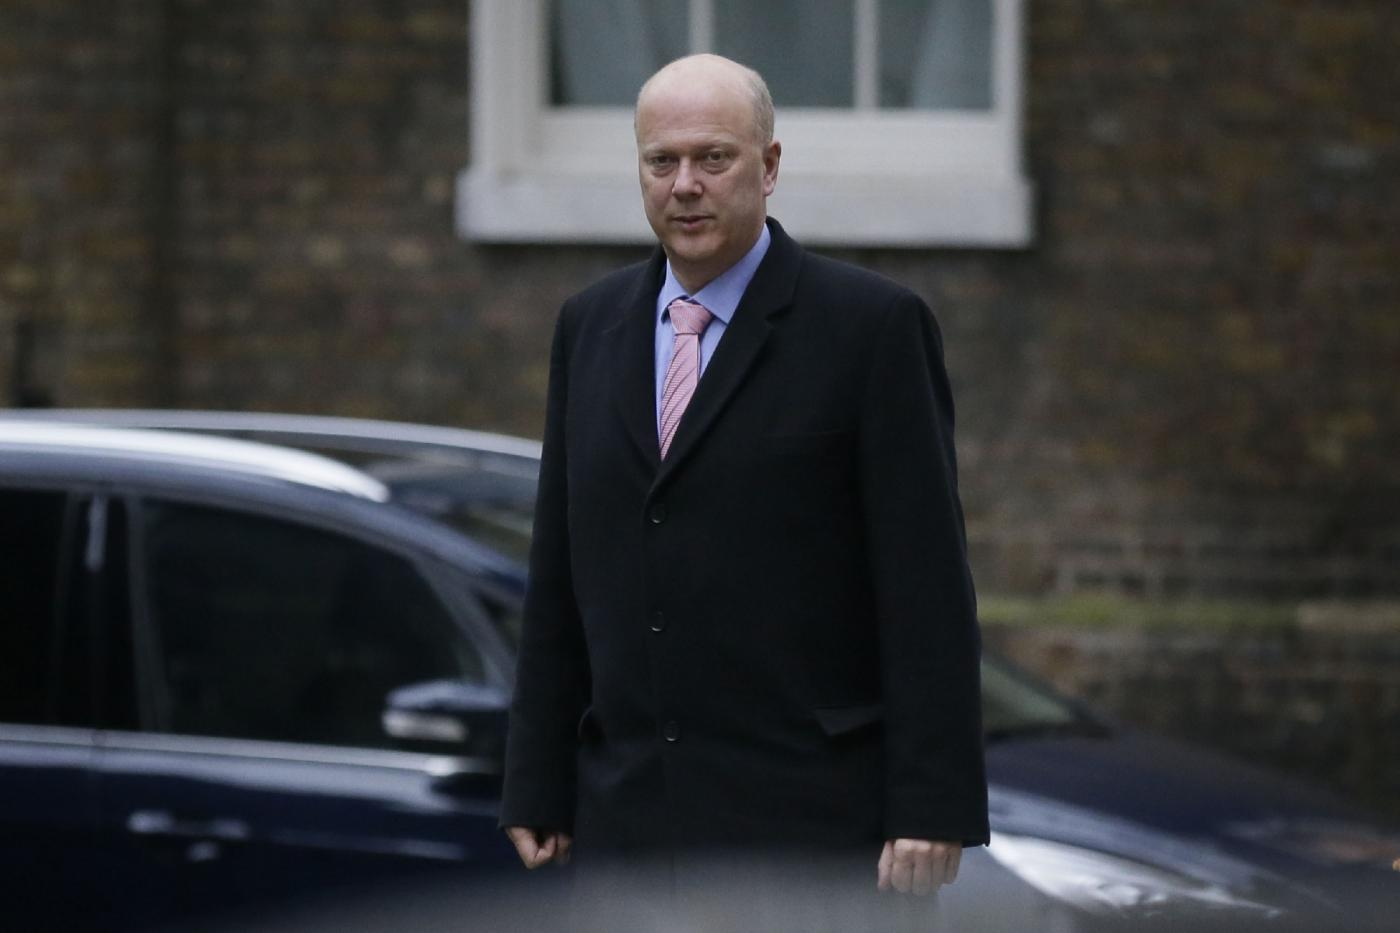 LONDON, Jan. 10, 2018 (Xinhua) -- Chris Grayling, Britain's transport secretary, arrives for the first cabinet meeting of the year, following yesterday's cabinet reshuffle, at 10 Downing Street, in London, Britain, on Jan. 9, 2018. (Xinhua/Tim Ireland/IANS) by .